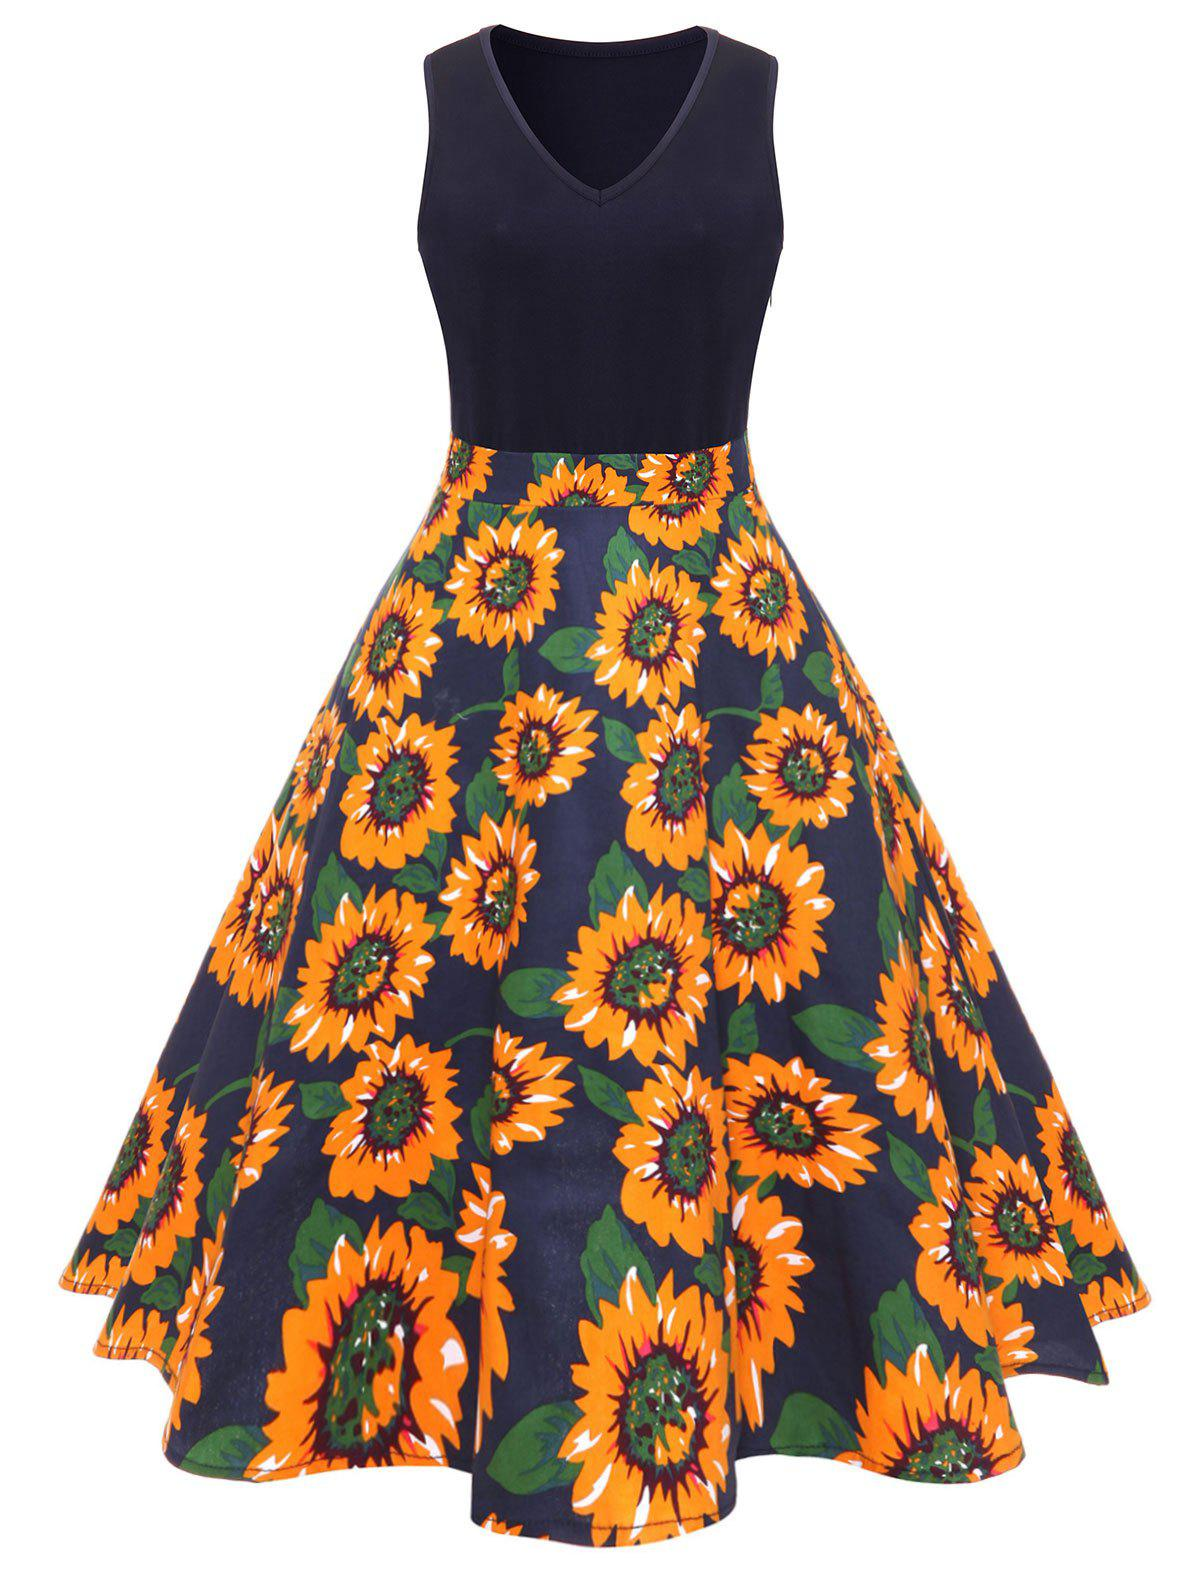 9c198ce1a2e5 40% OFF] Vintage Sunflower Print Fit And Flare Dress | Rosegal